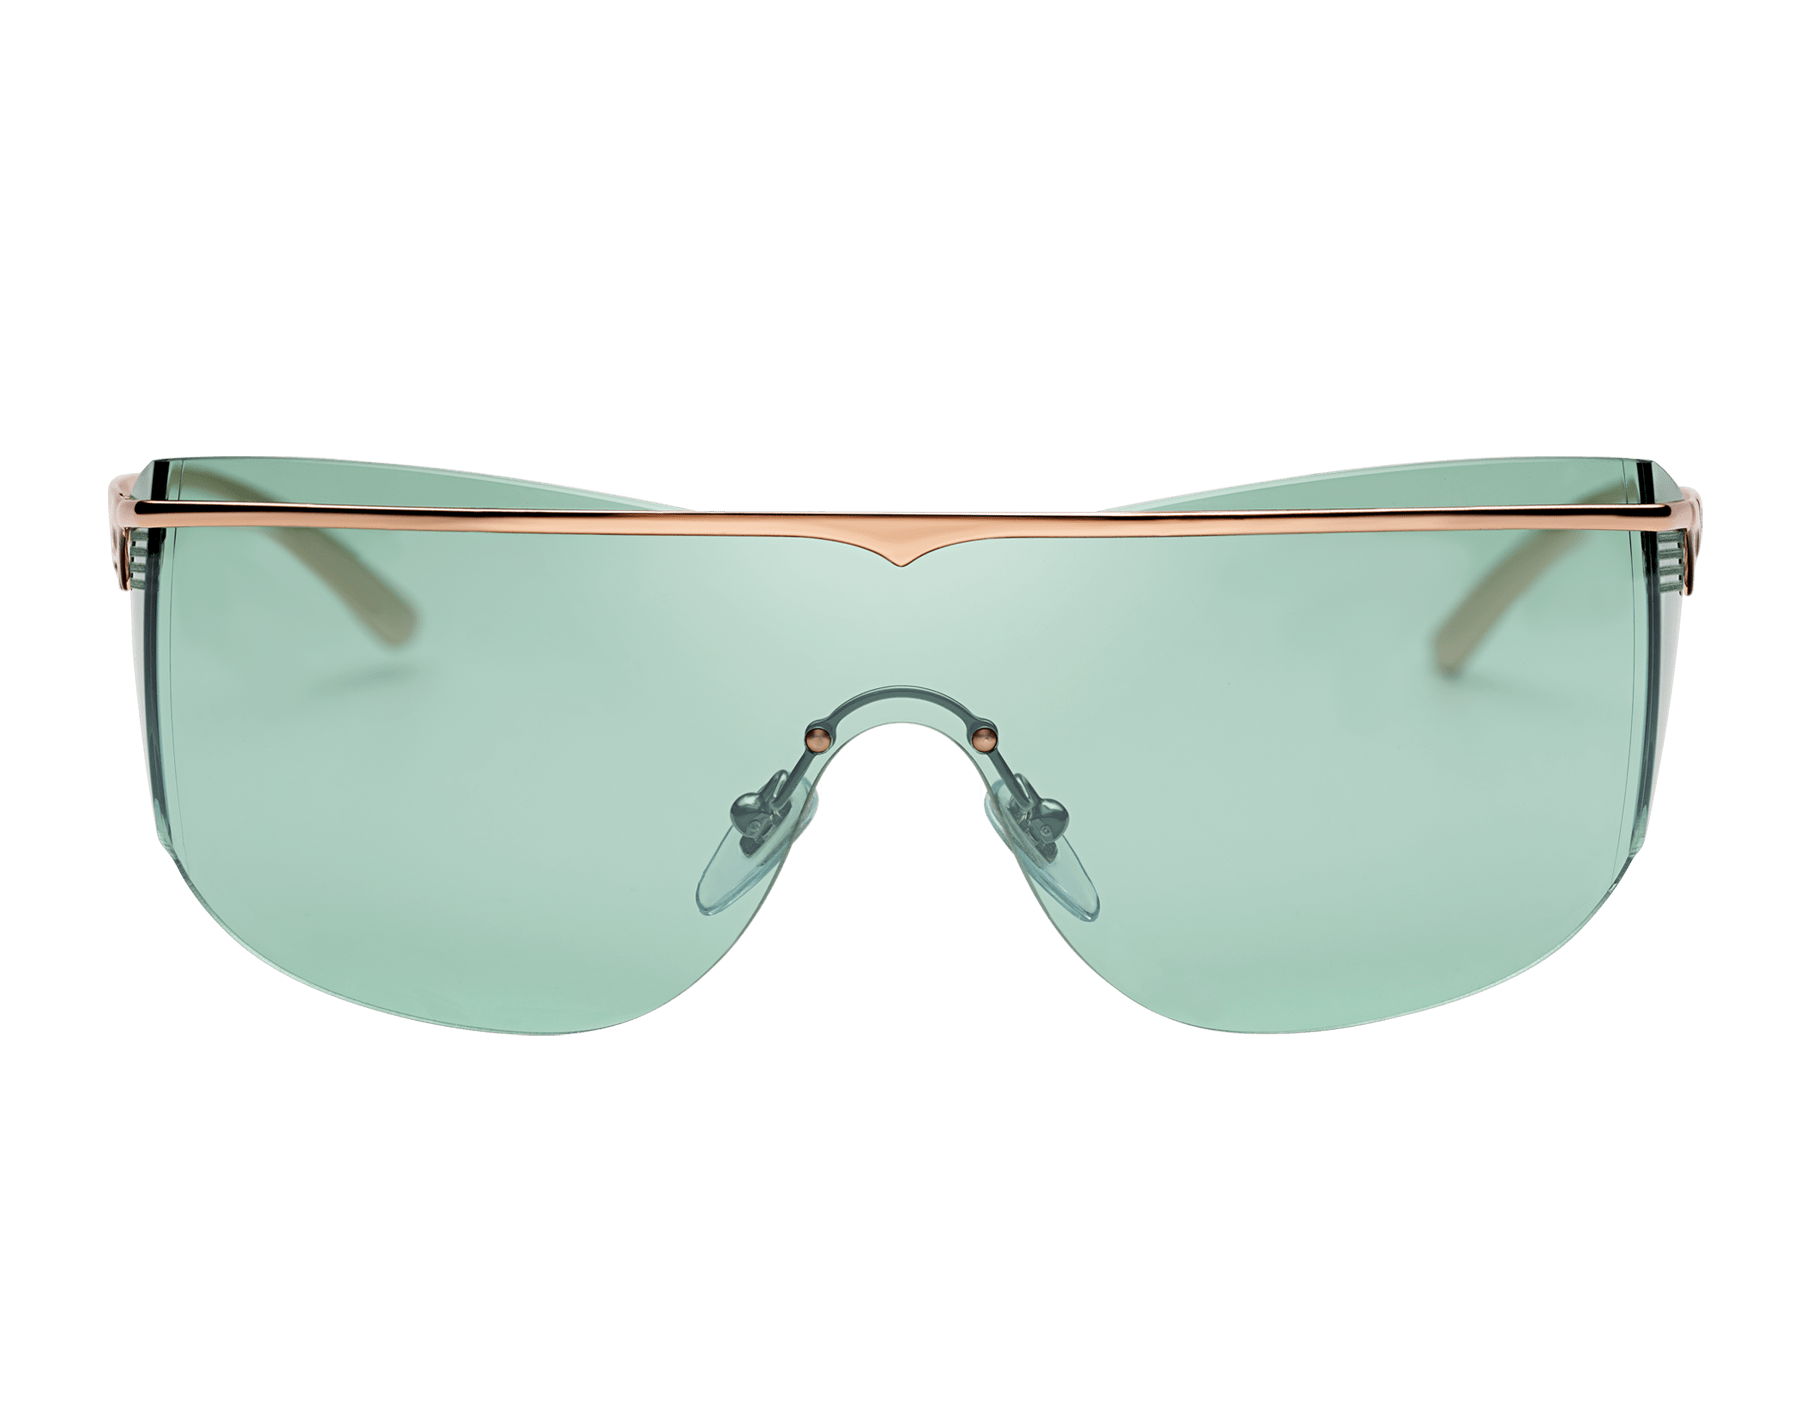 Bulgari B.zero1 B.supercurve metal shield sunglasses. 903967 image 2